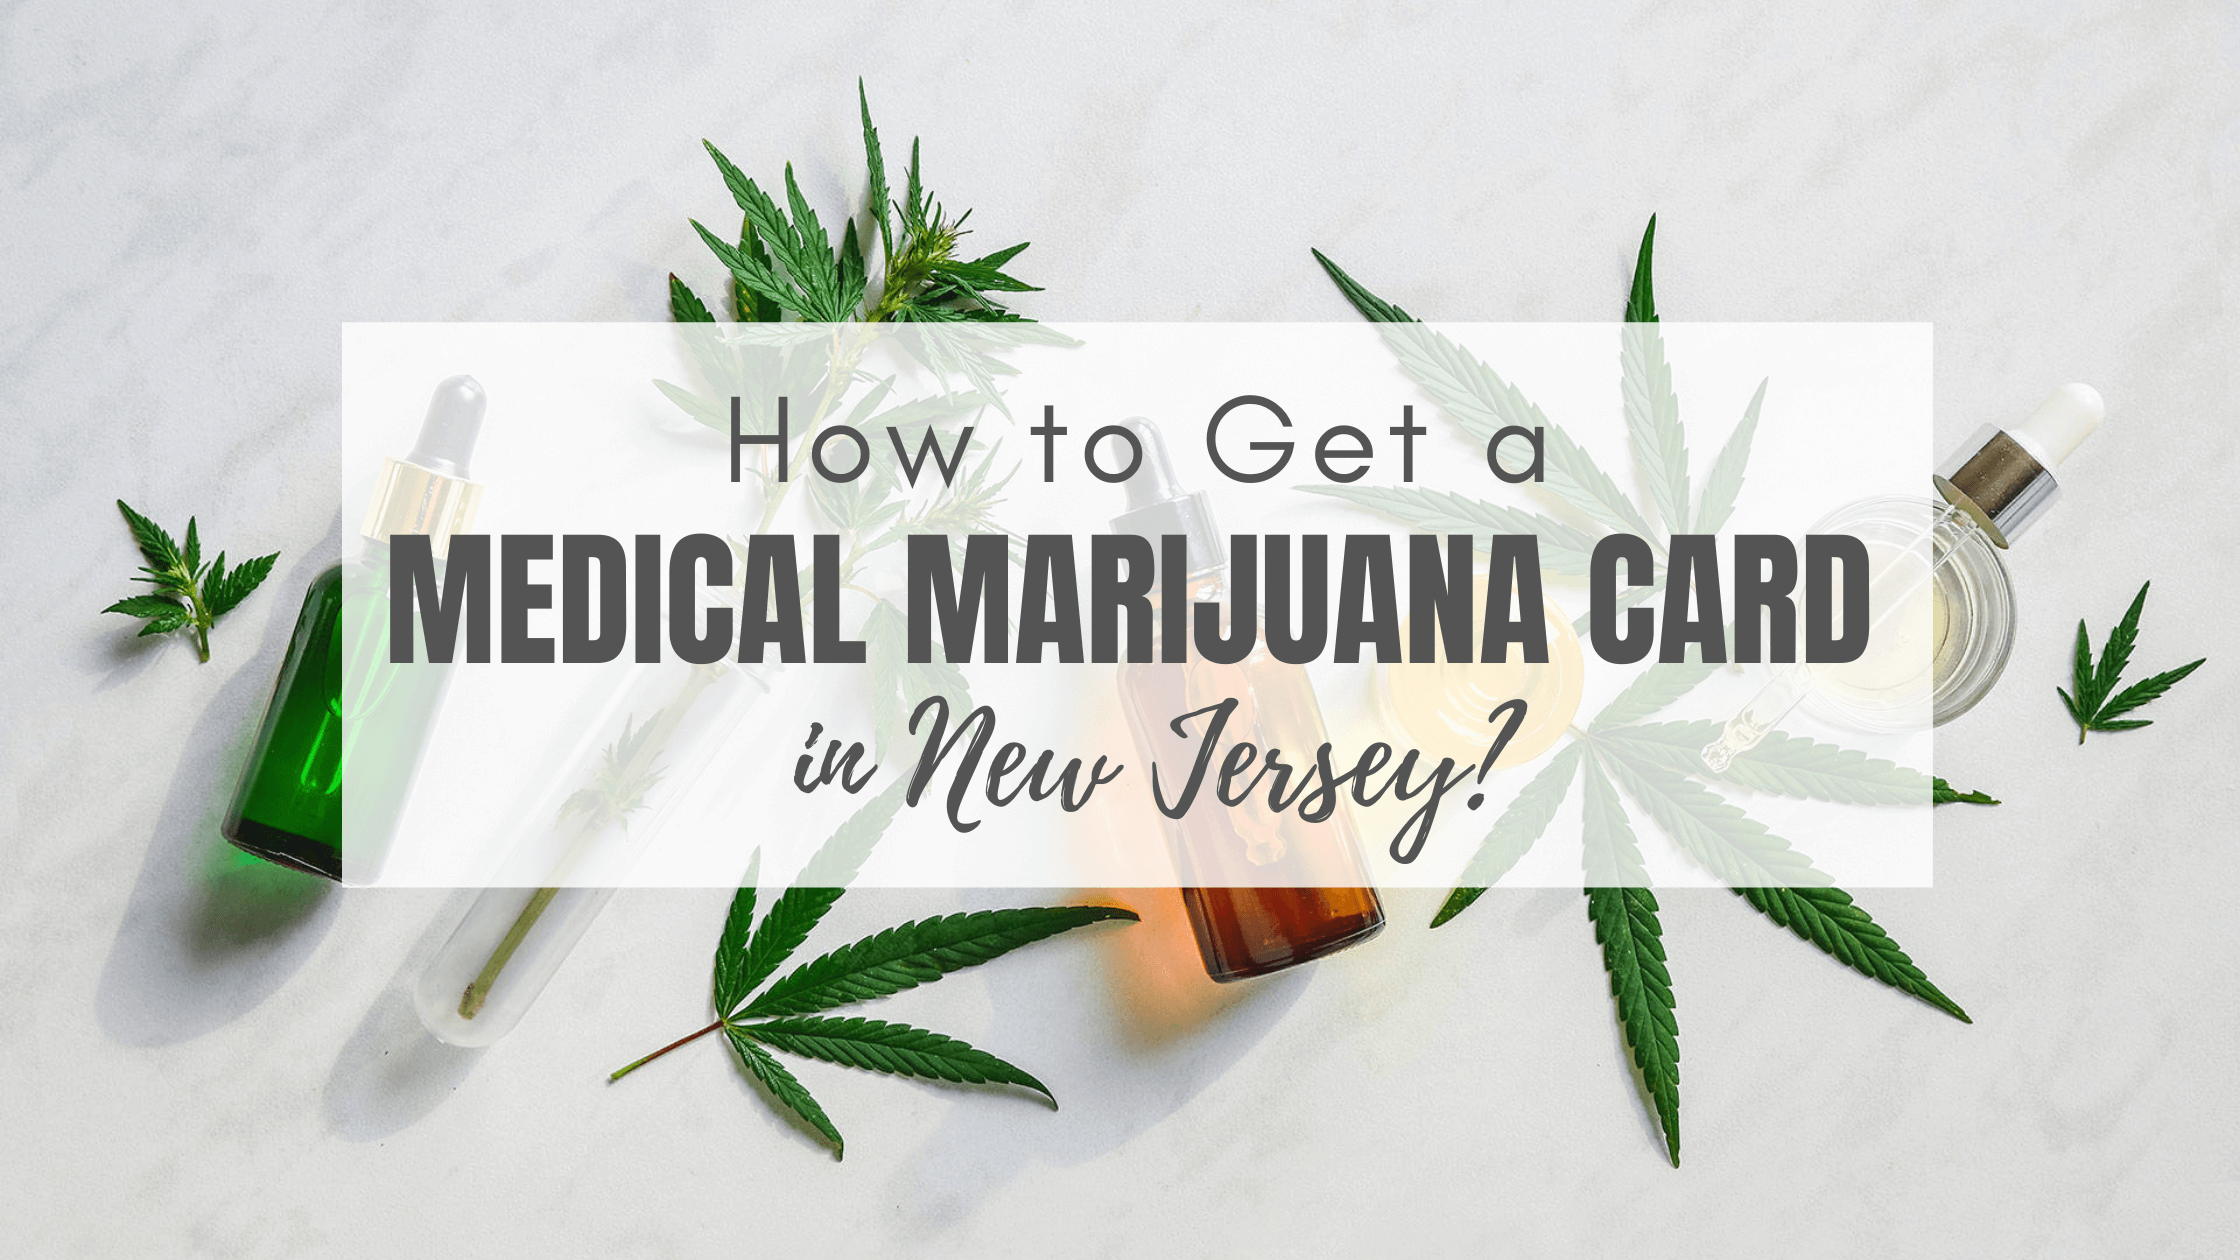 How to Get a Medical Marijuana Card in New Jersey